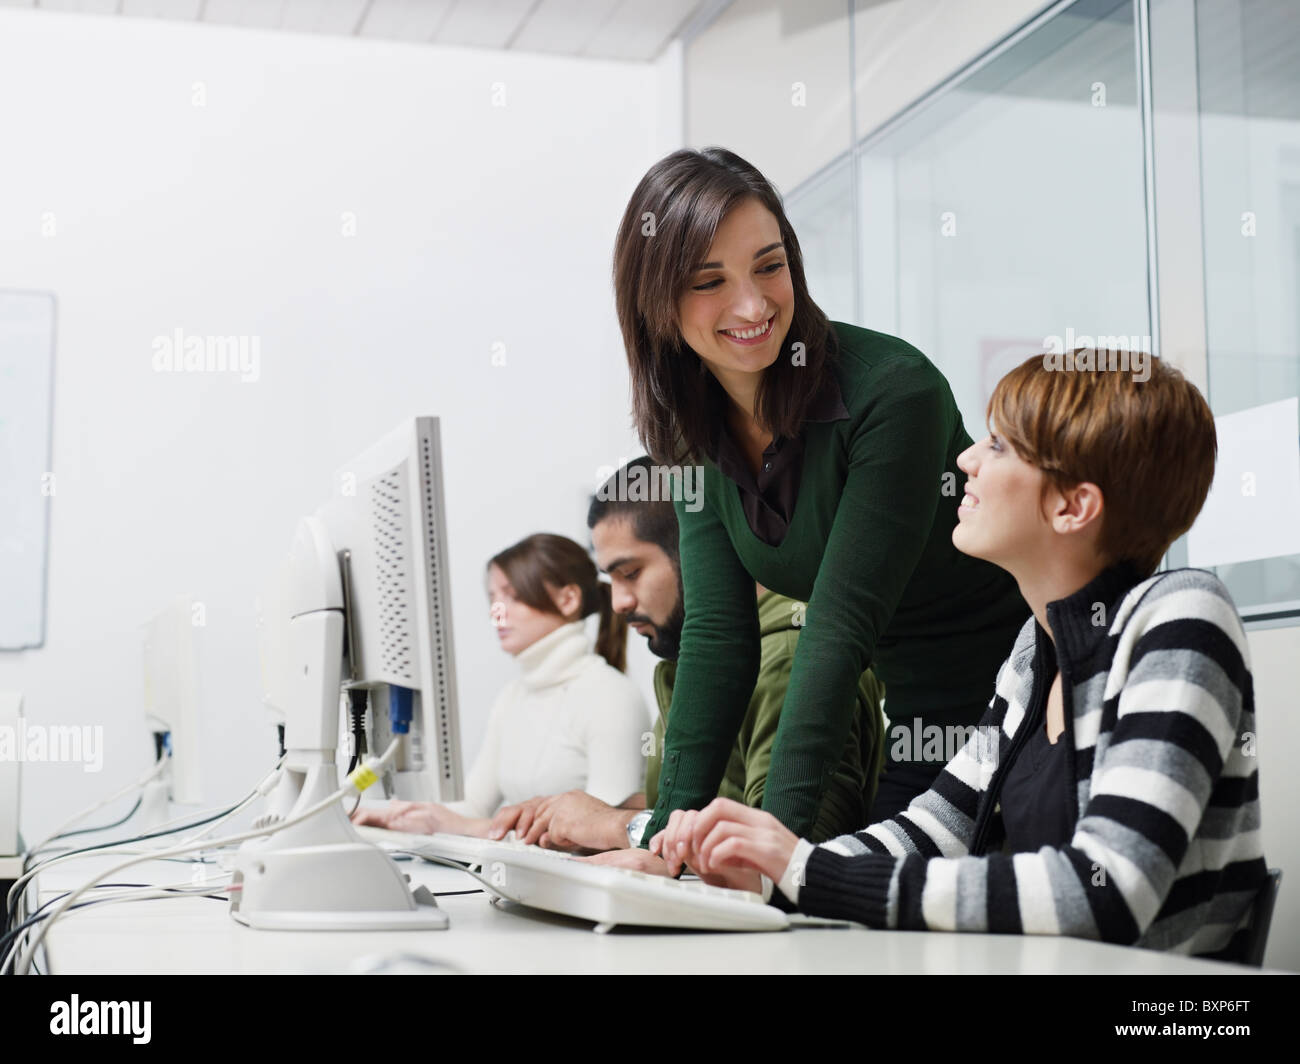 Computer lab with caucasian female teacher helping student. Horizontal shape, side view, waist up, copy space - Stock Image